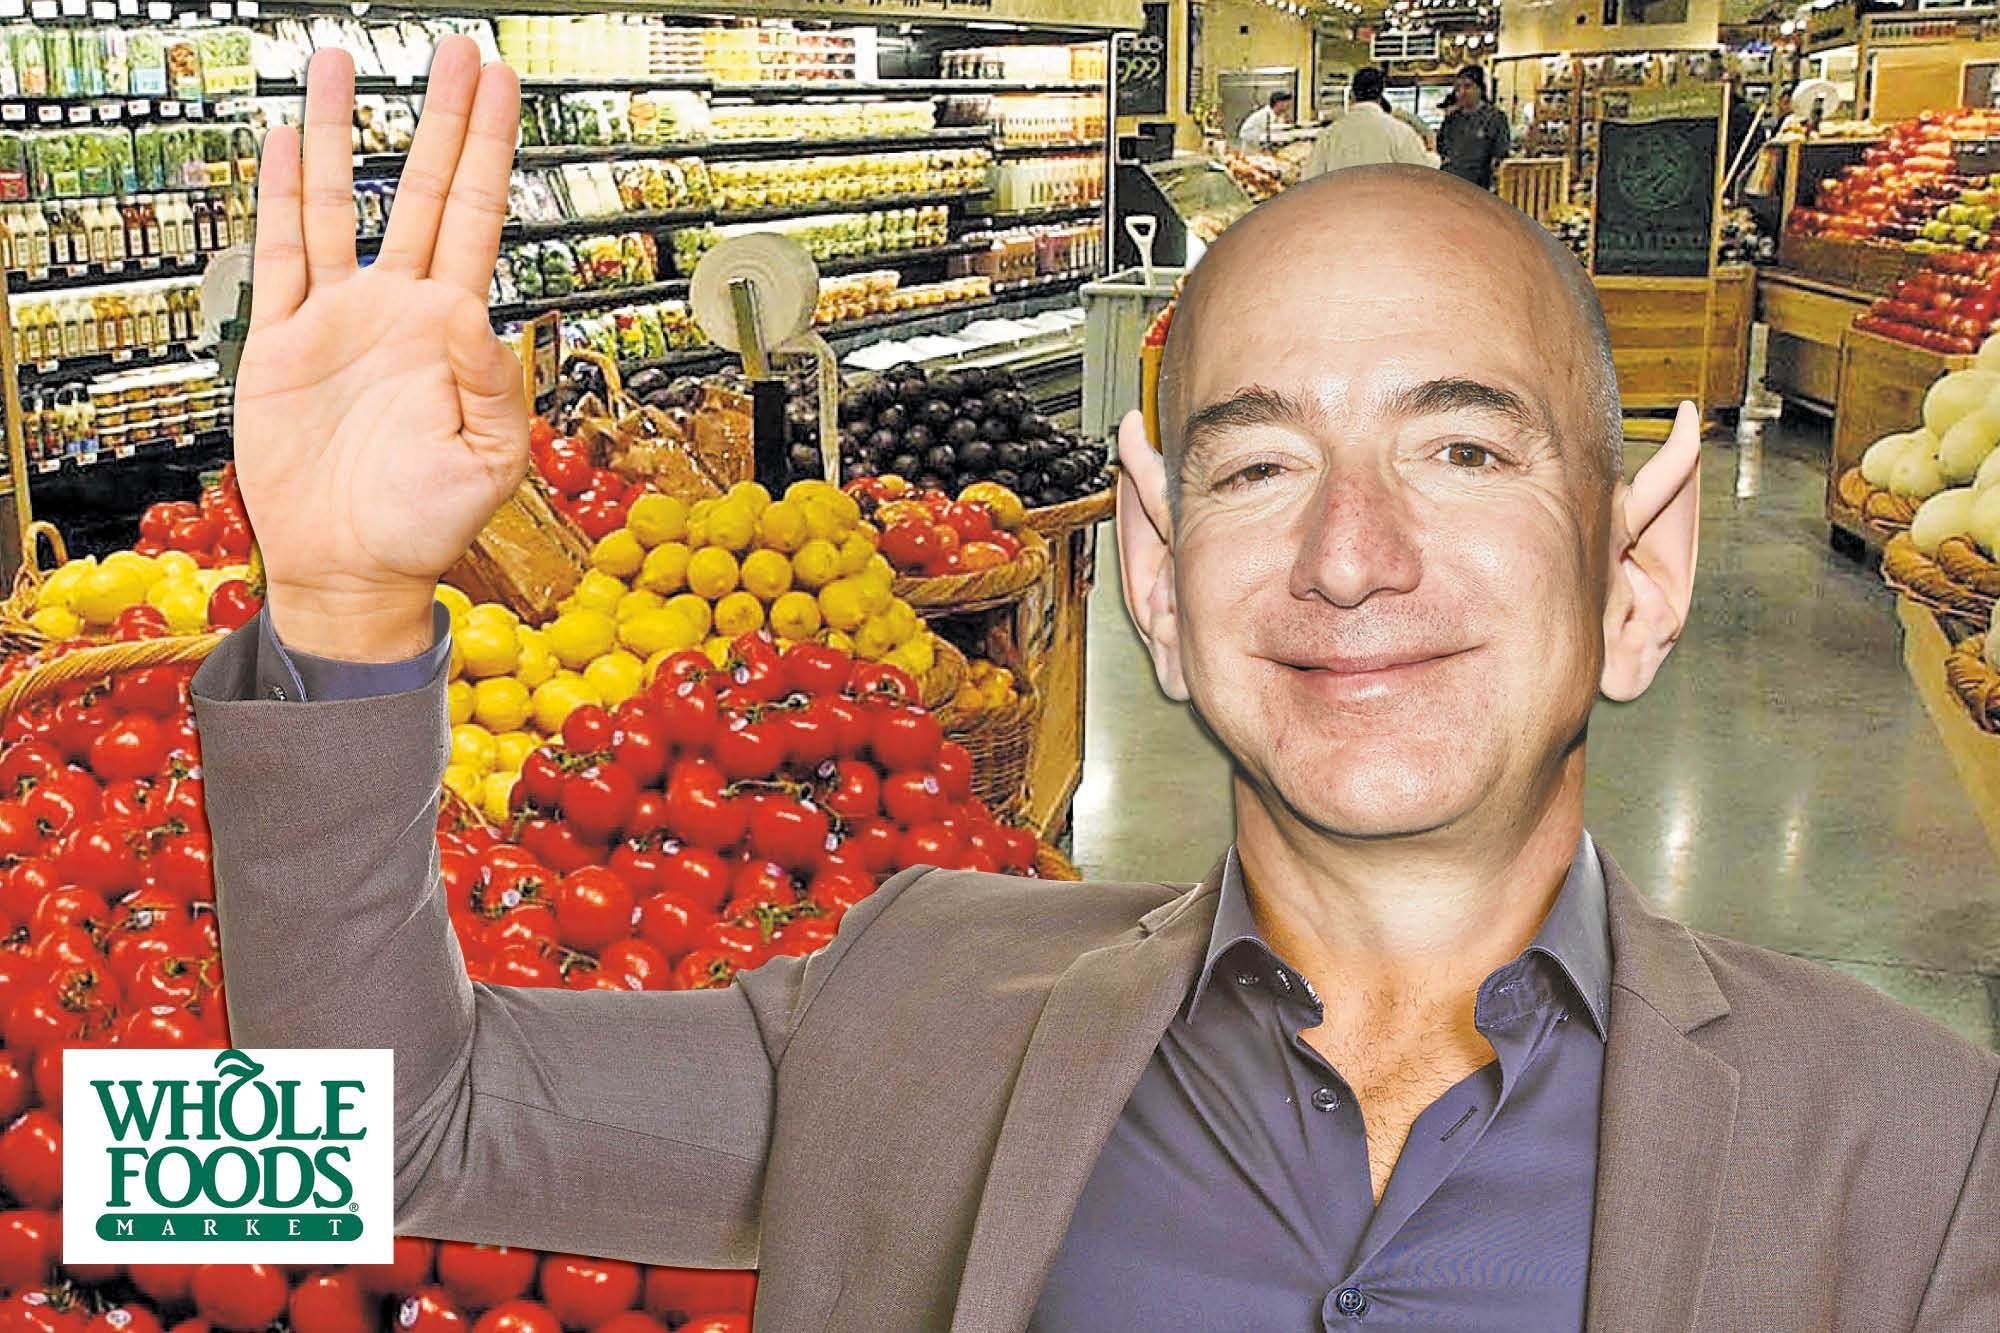 Amazon tests whole foods payment system that lets you pay